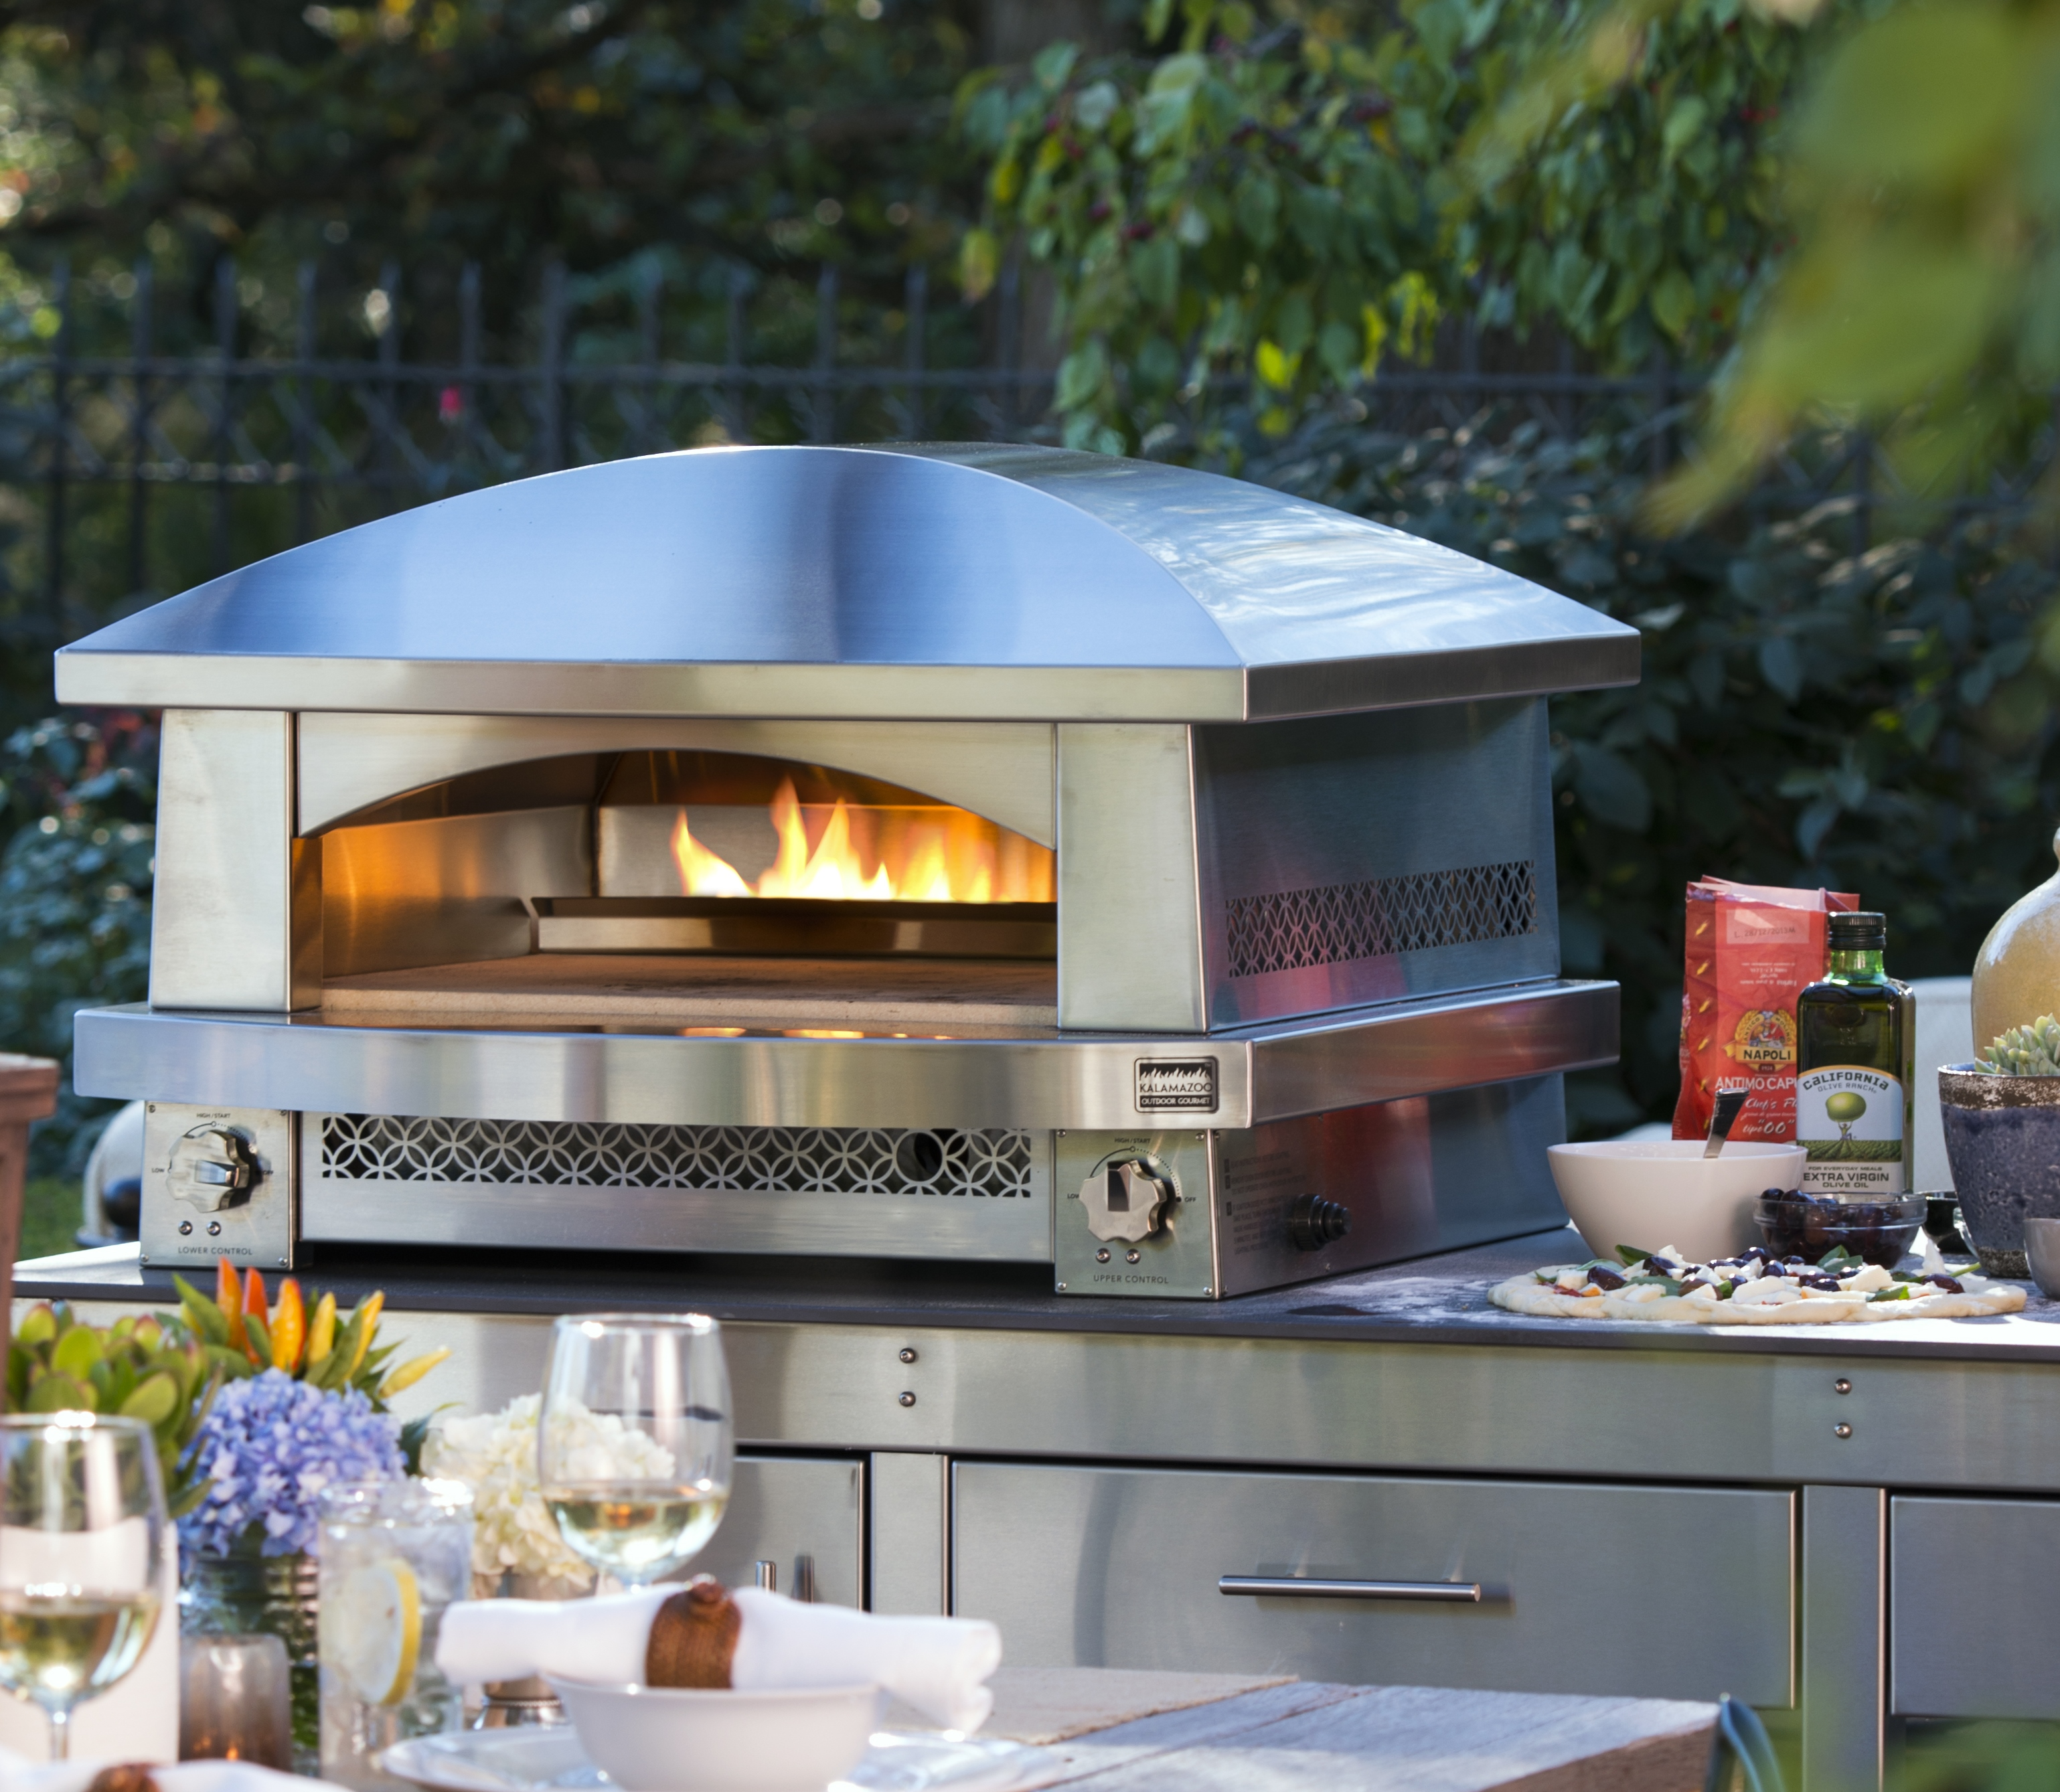 Kitchen Remodel Kalamazoo Mi: Counter Top Outdoor Pizza Oven Bakes